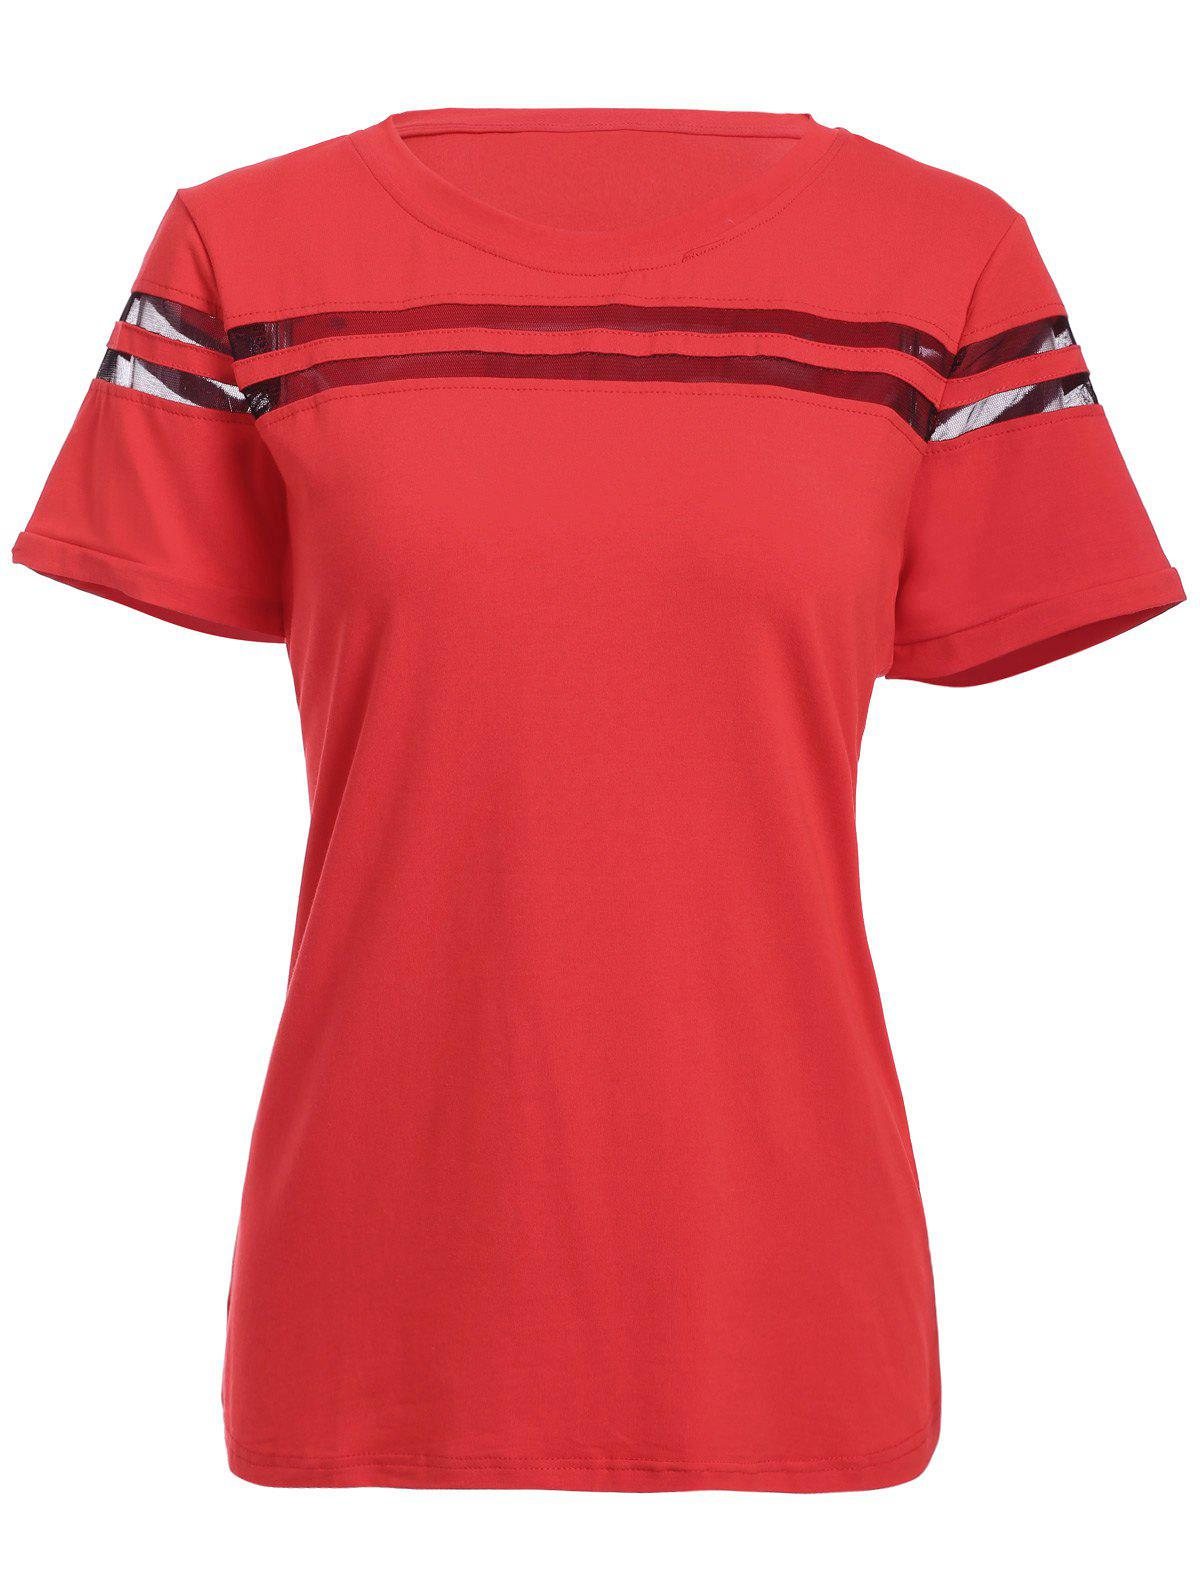 Women's Graceful Pure Color Voile Splicing T-Shirt - RED XL